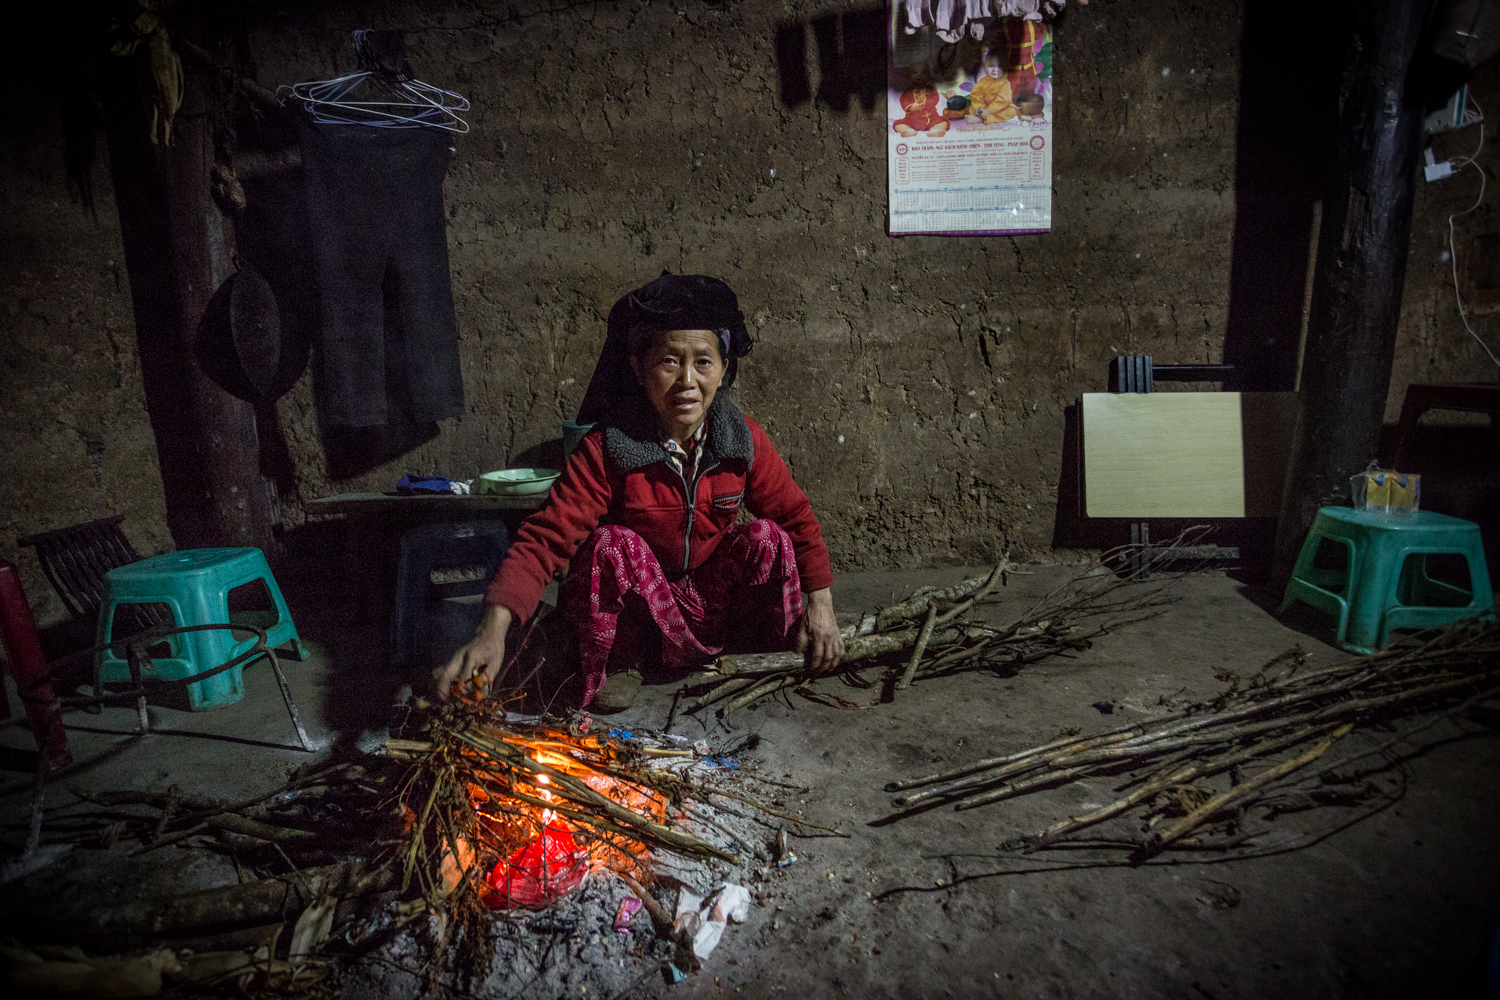 A member of the White Hmong ethnic minority photographed inside her traditional rammed-earth home in Ha Giang Province, one kilometer from the Chinese border. I met her son while traveling in the area and spent the night in their humble abode.